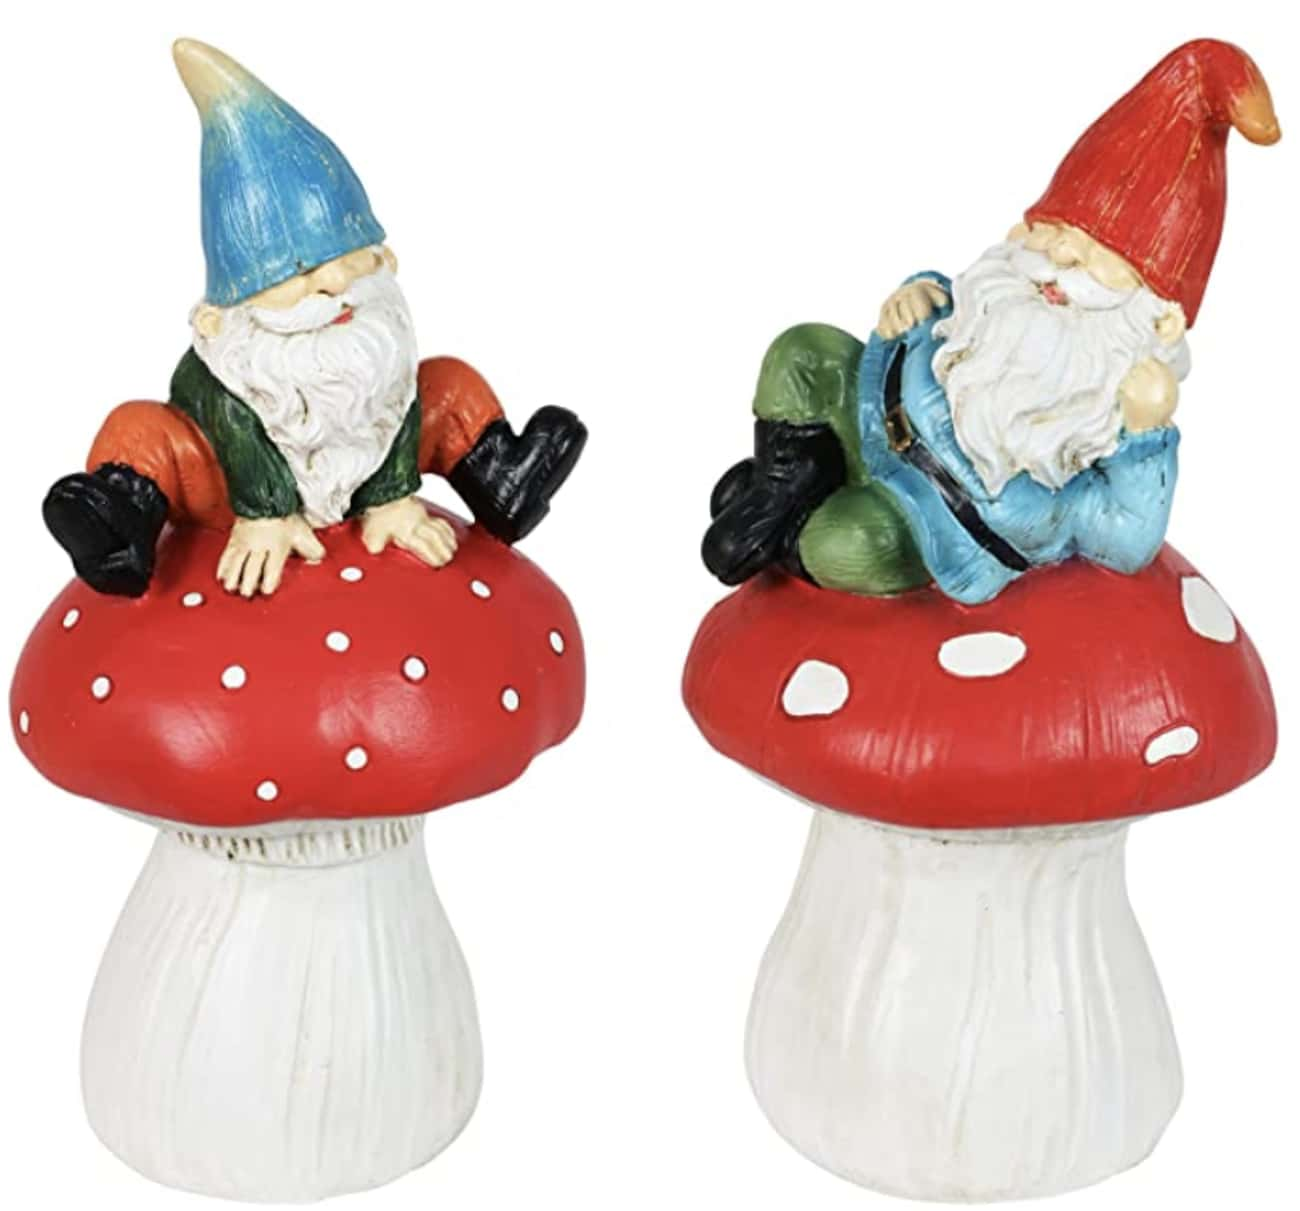 Mushroom Gnomes is listed (or ranked) 3 on the list 20 Cool Garden Gnomes To Spice Up Your Yard